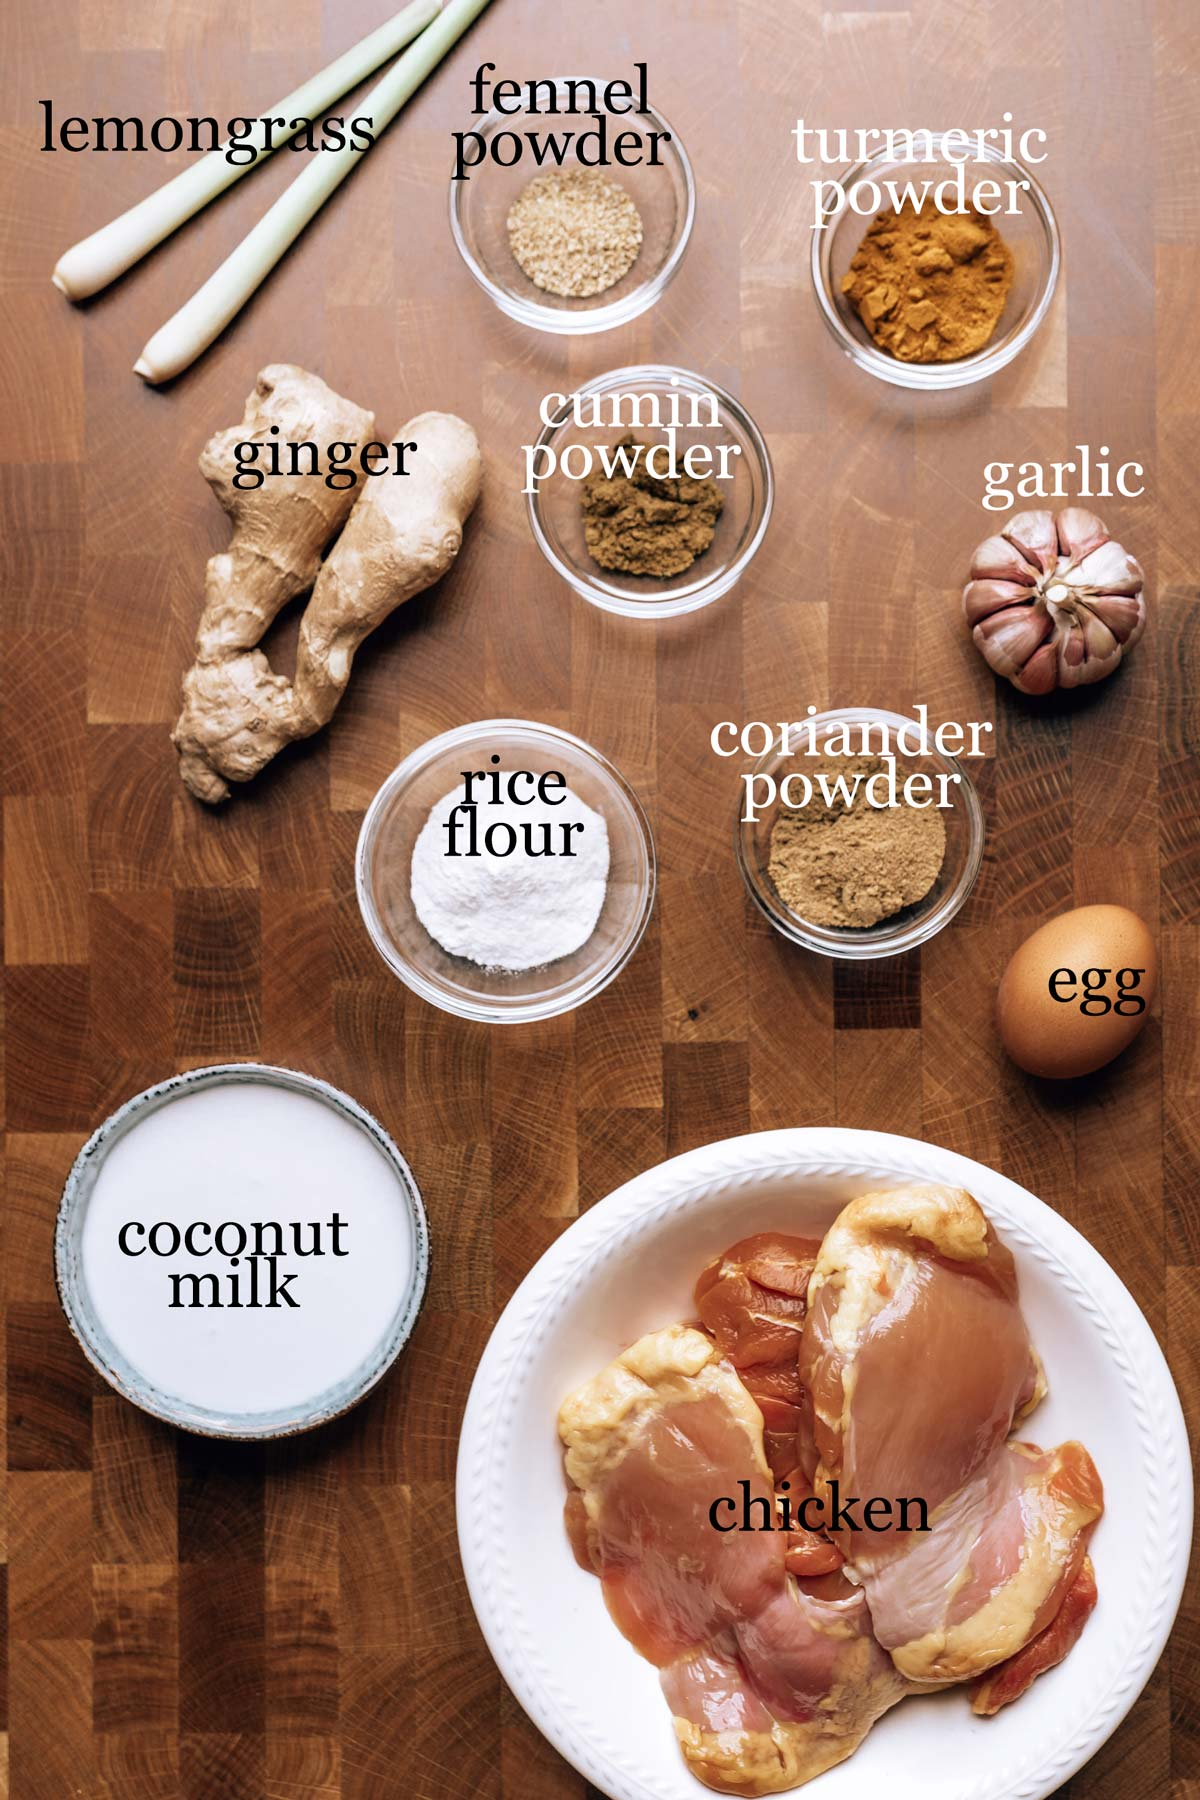 Ingredients to make spiced fried chicken